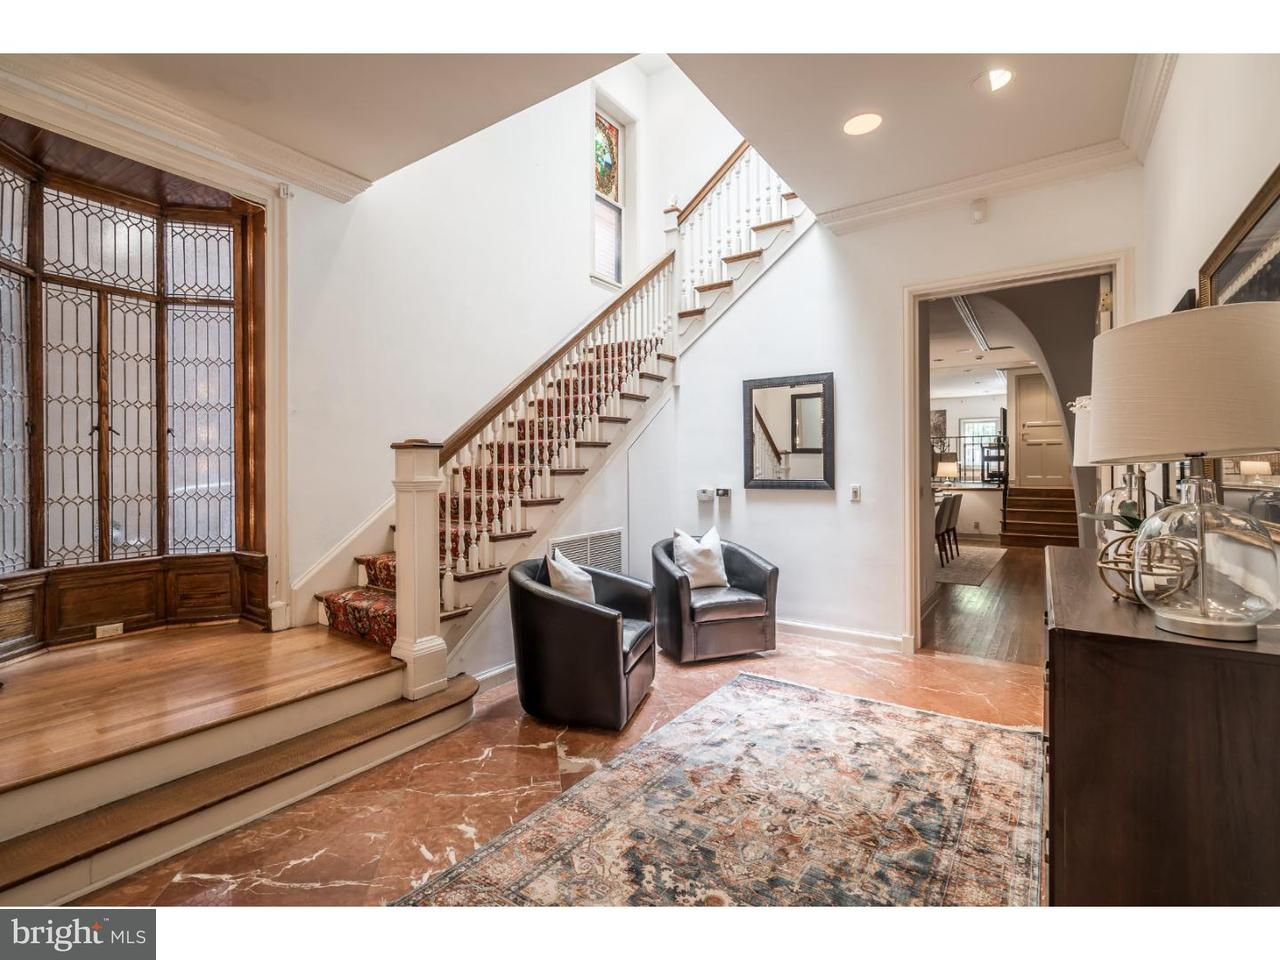 Additional photo for property listing at 1910 RITTENHOUSE SQ  费城, 宾夕法尼亚州 19103 美国